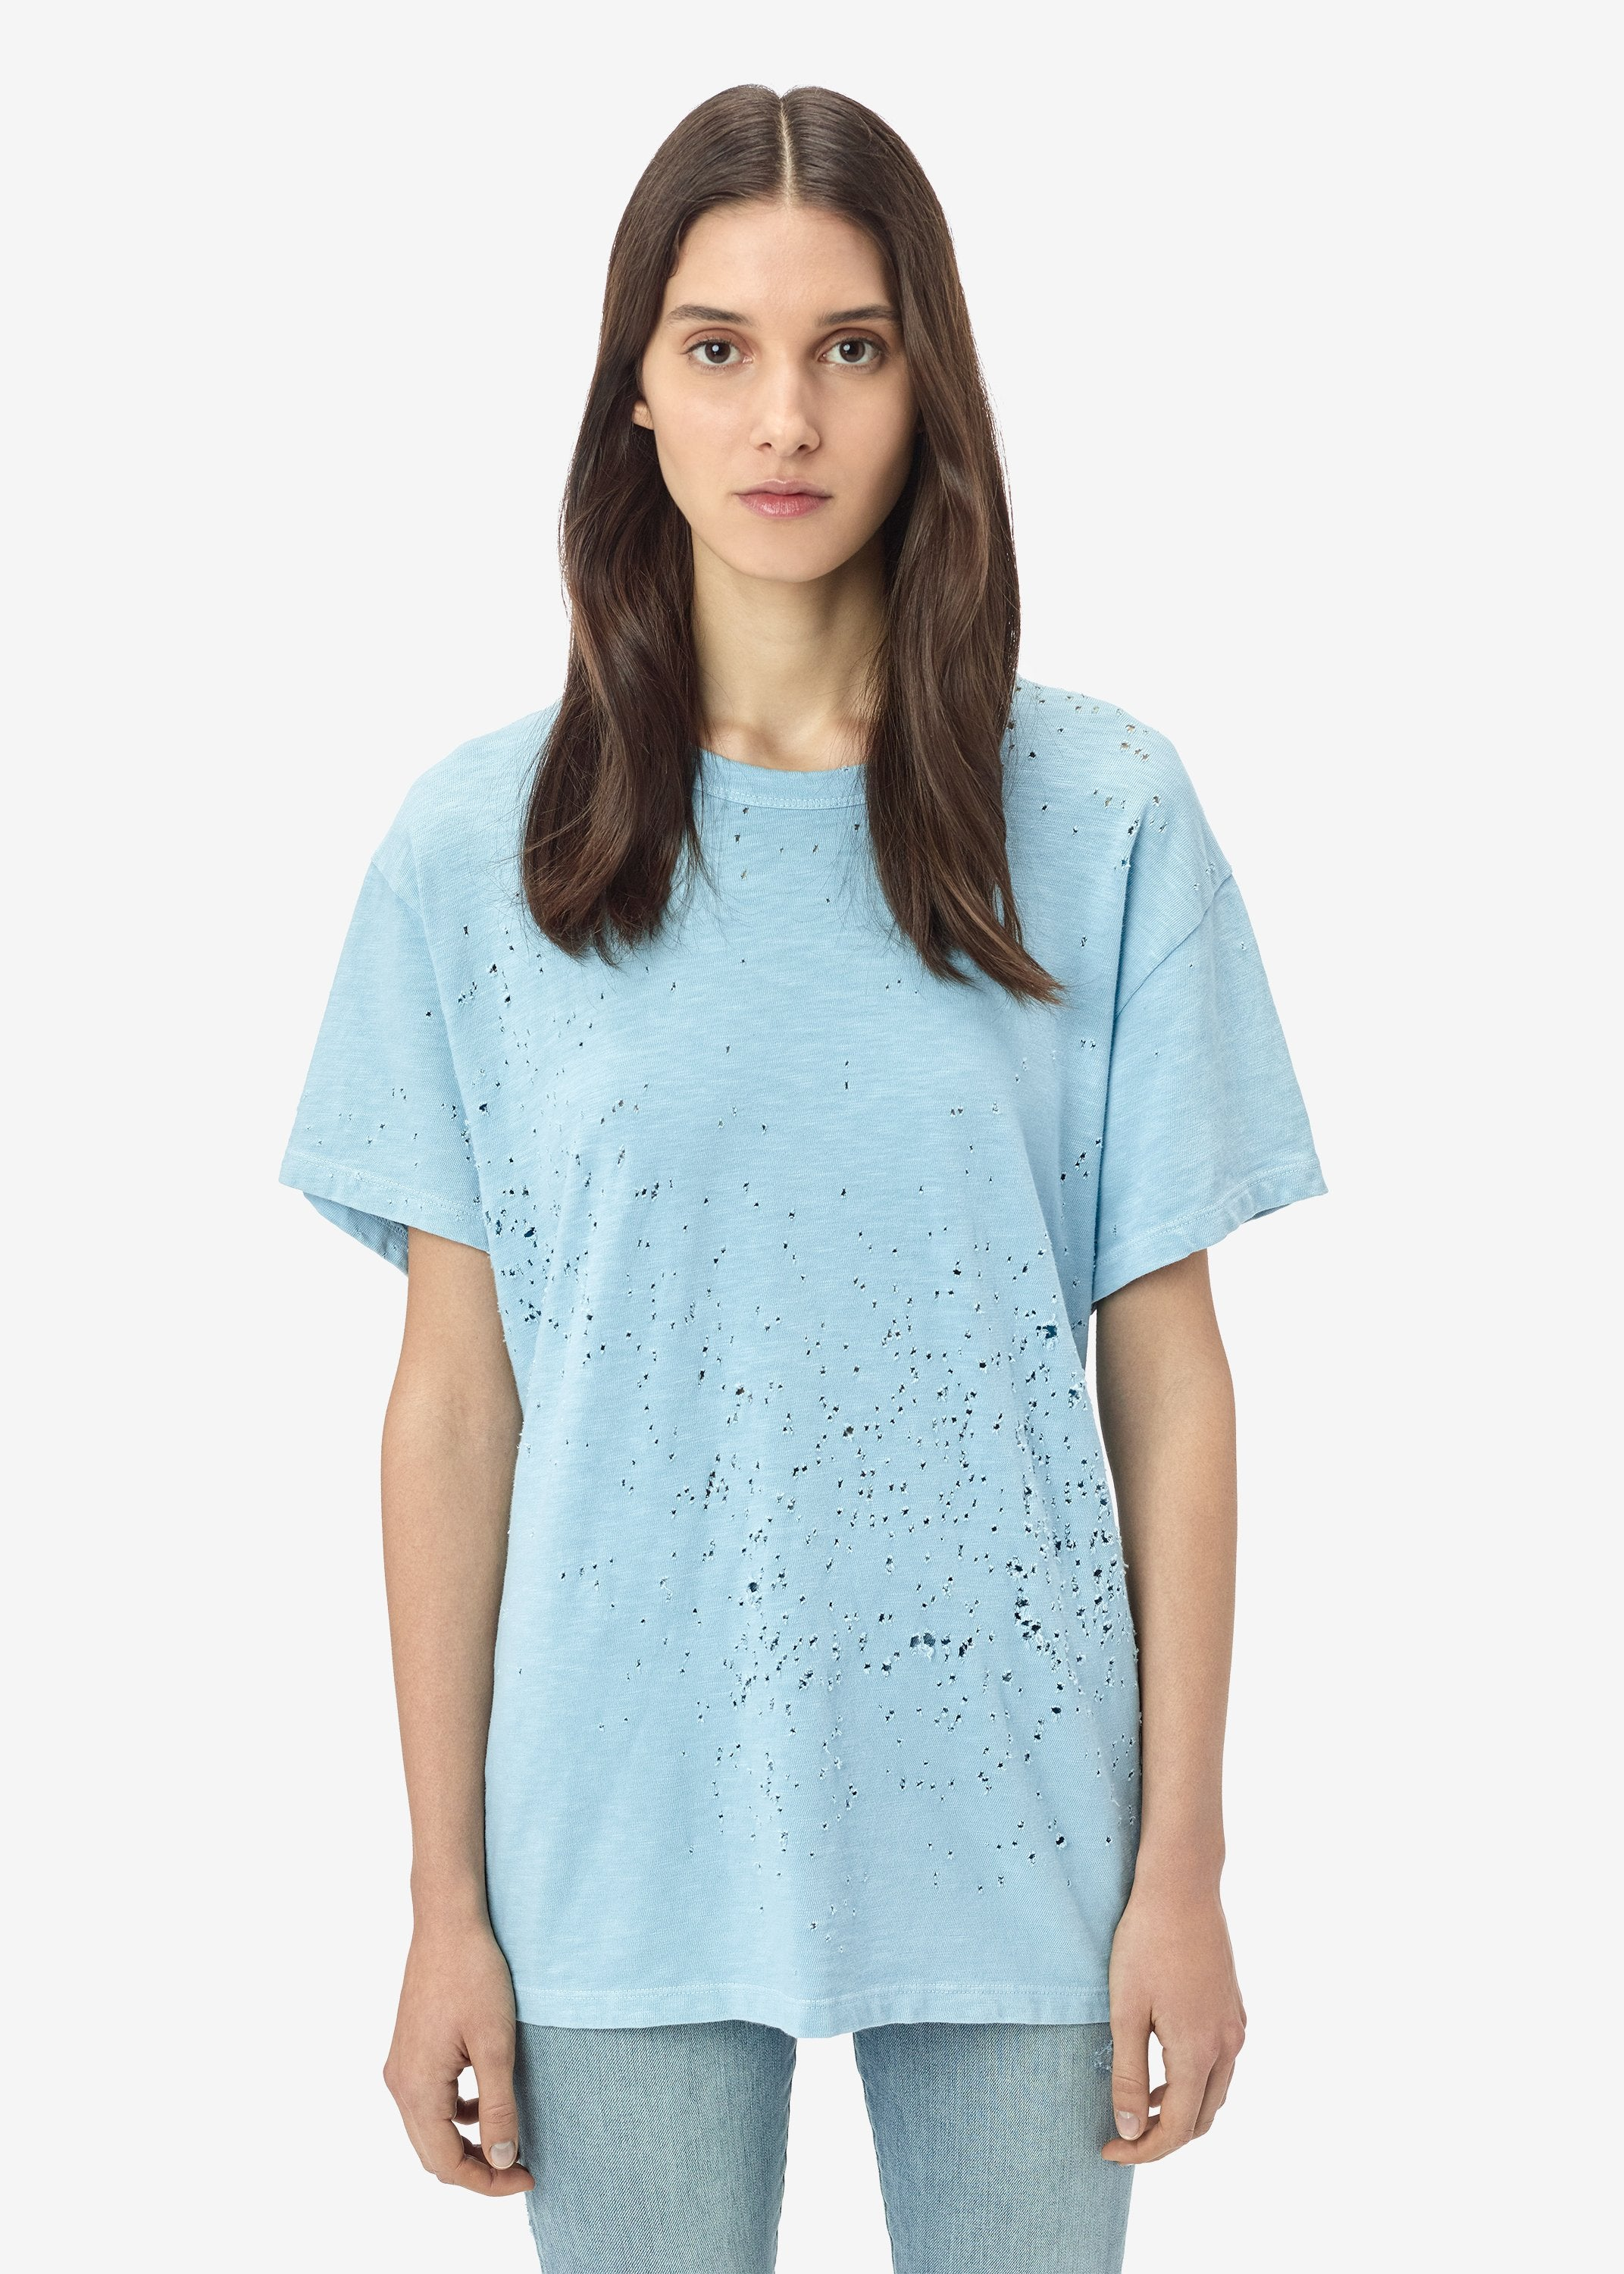 shotgun-tee-light-blue-image-1